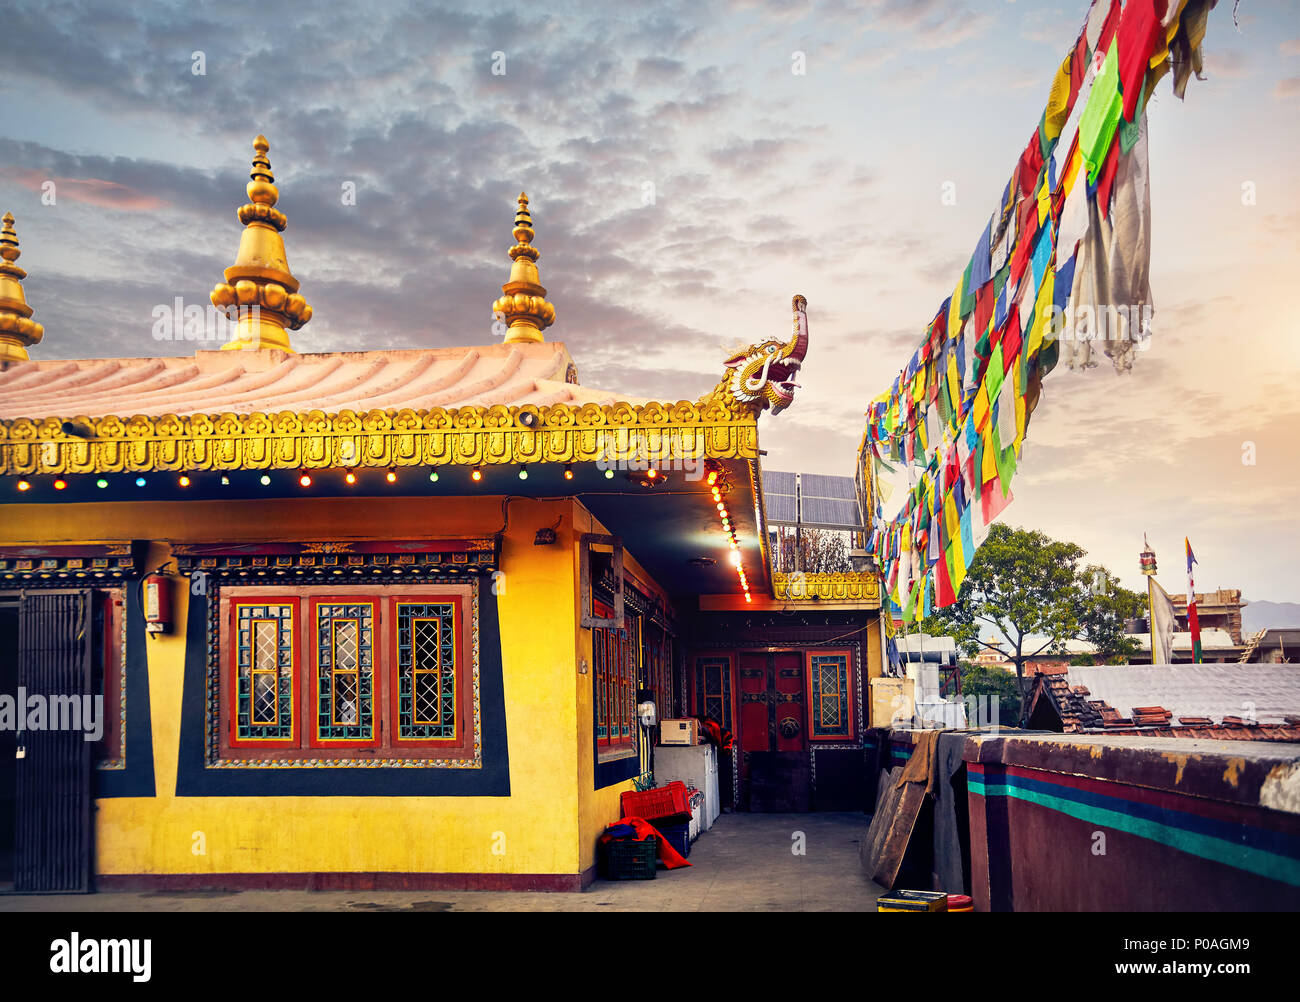 Buddhist monastery roof at Bodnath Great Buddhist complex with golden dragon and prayer flags in Kathmandu - Stock Image